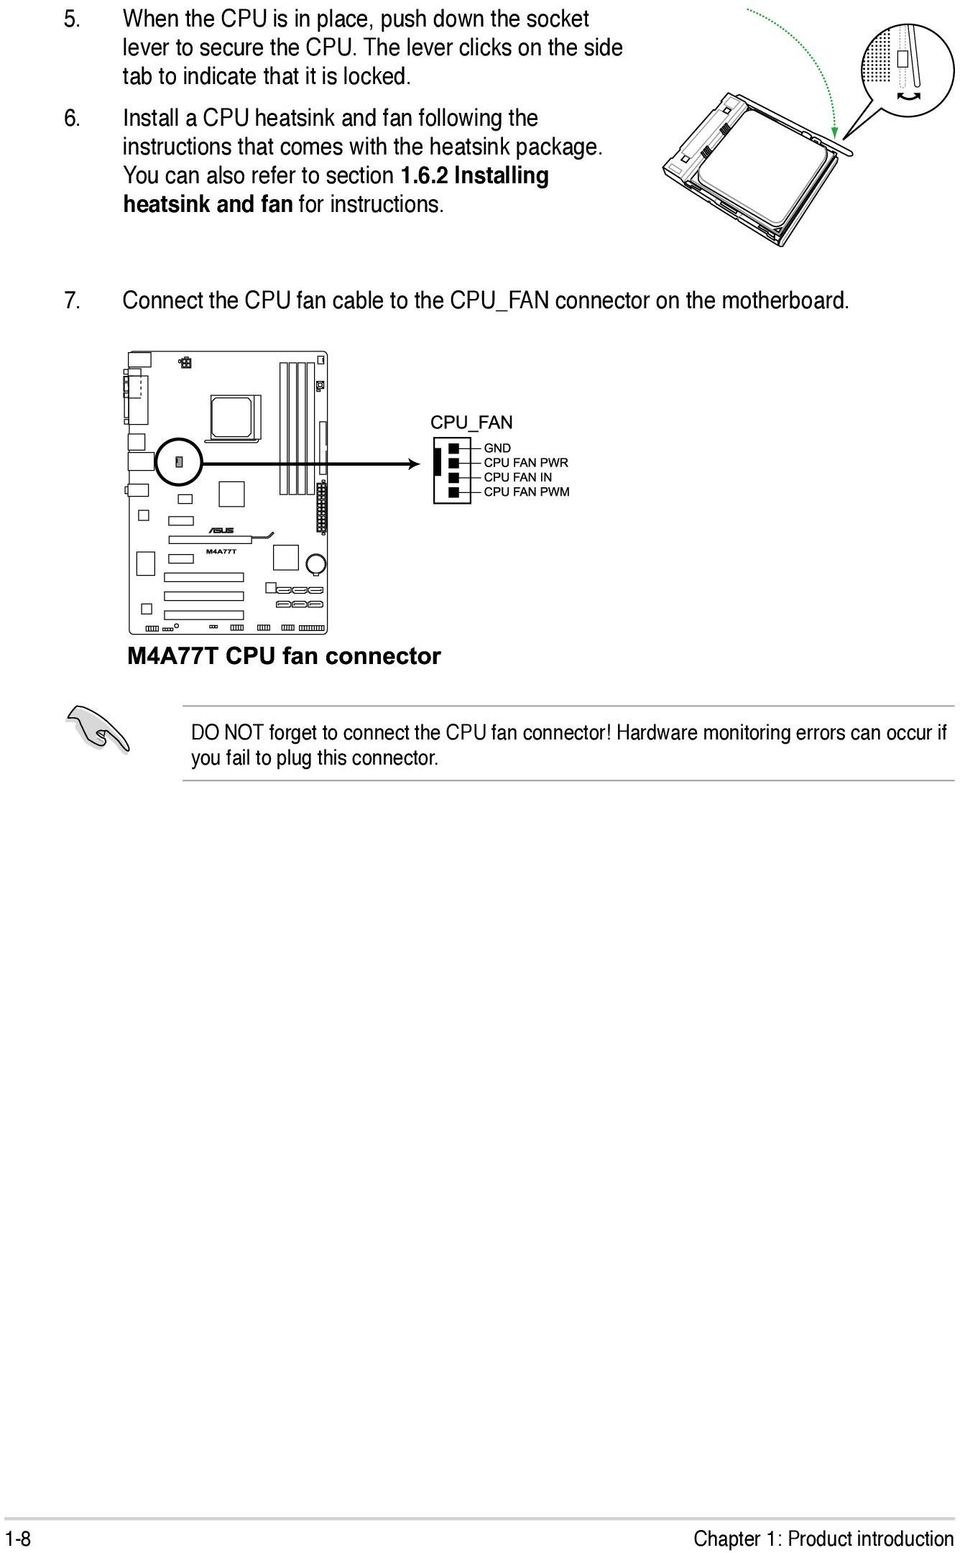 E5248 First Edition V1 December Pdf Compaq Hp Oem P4sd Front Panel Wiring Diagram 7 Connect The Cpu Fan Cable To Connector On Motherboard Do